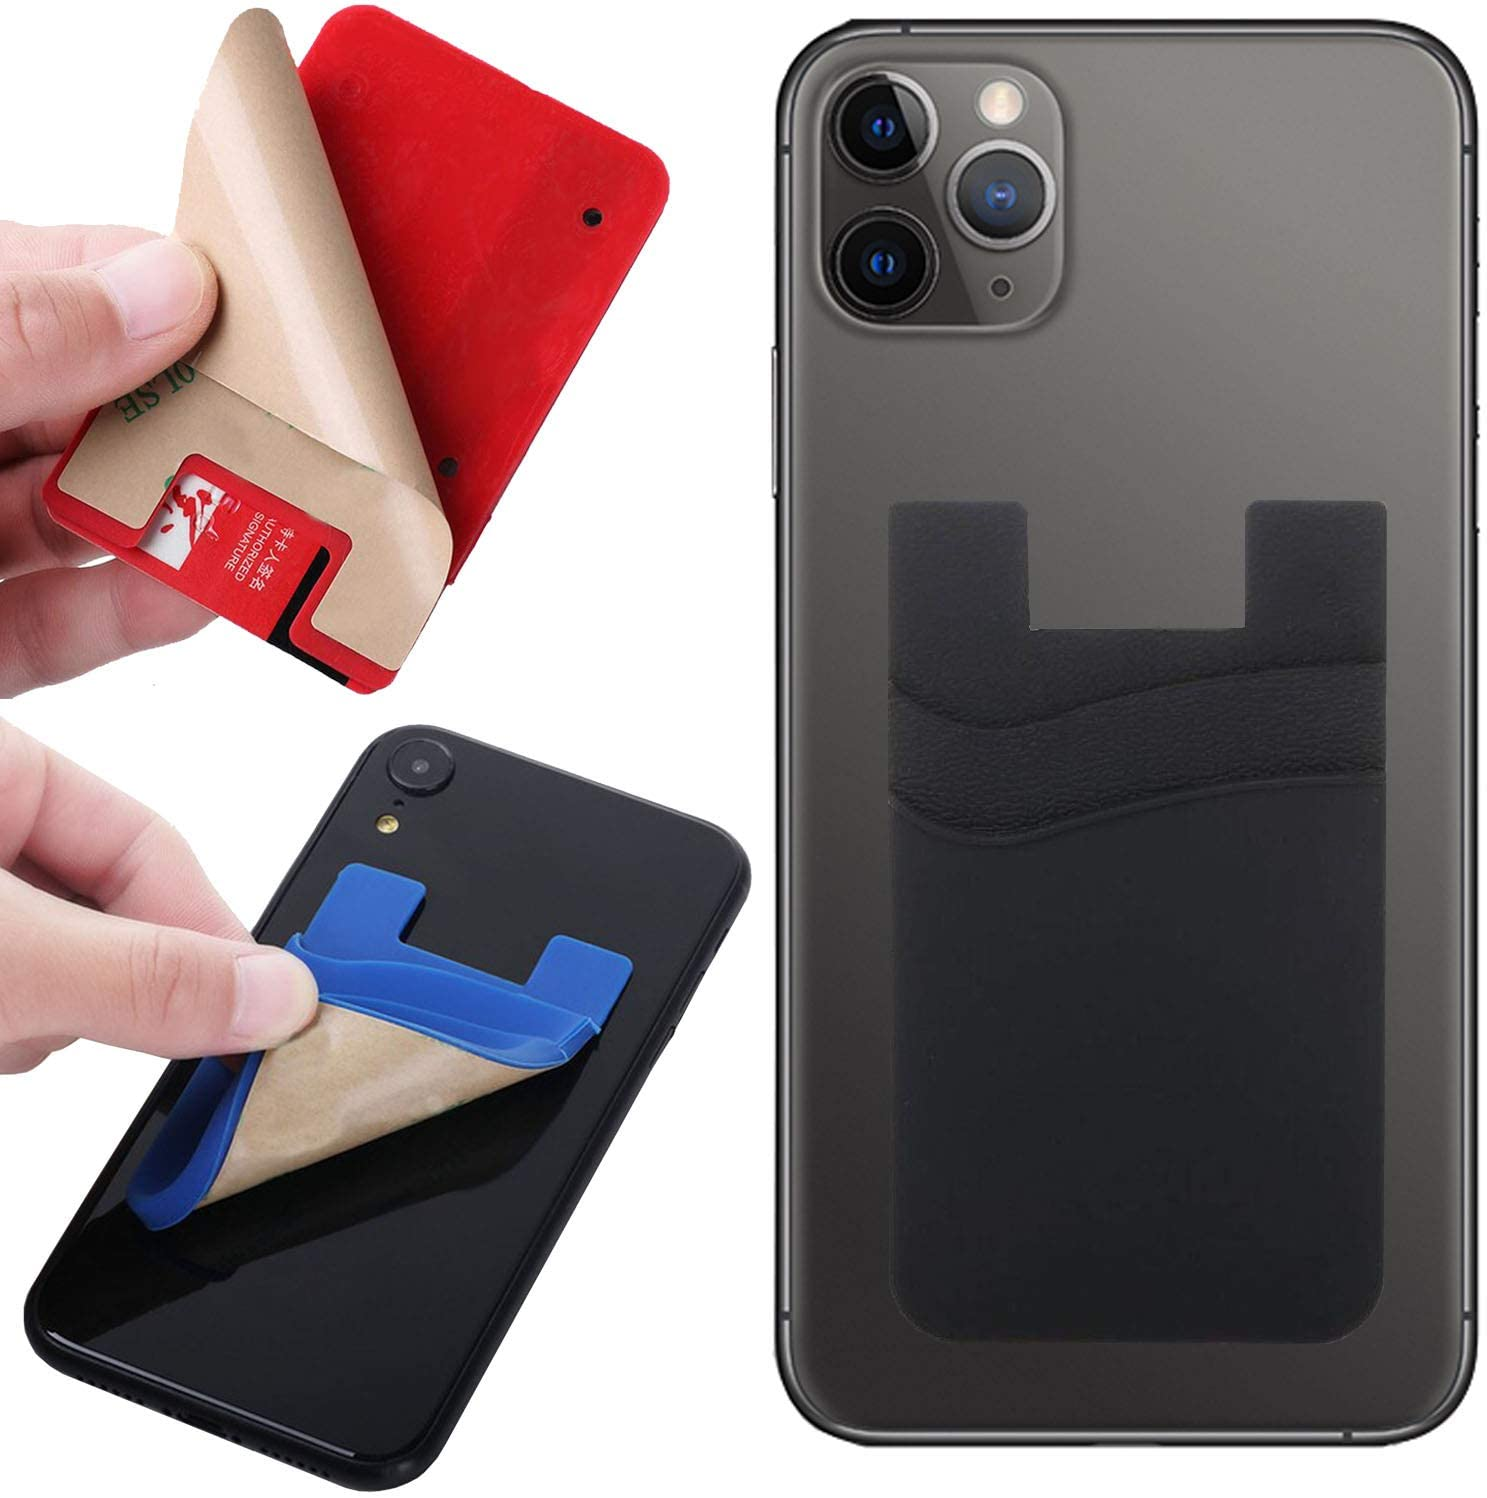 Card Holder for Back of Phone, Silicone Wallet Stick-on ID Credit Card Pockets for Smartphones